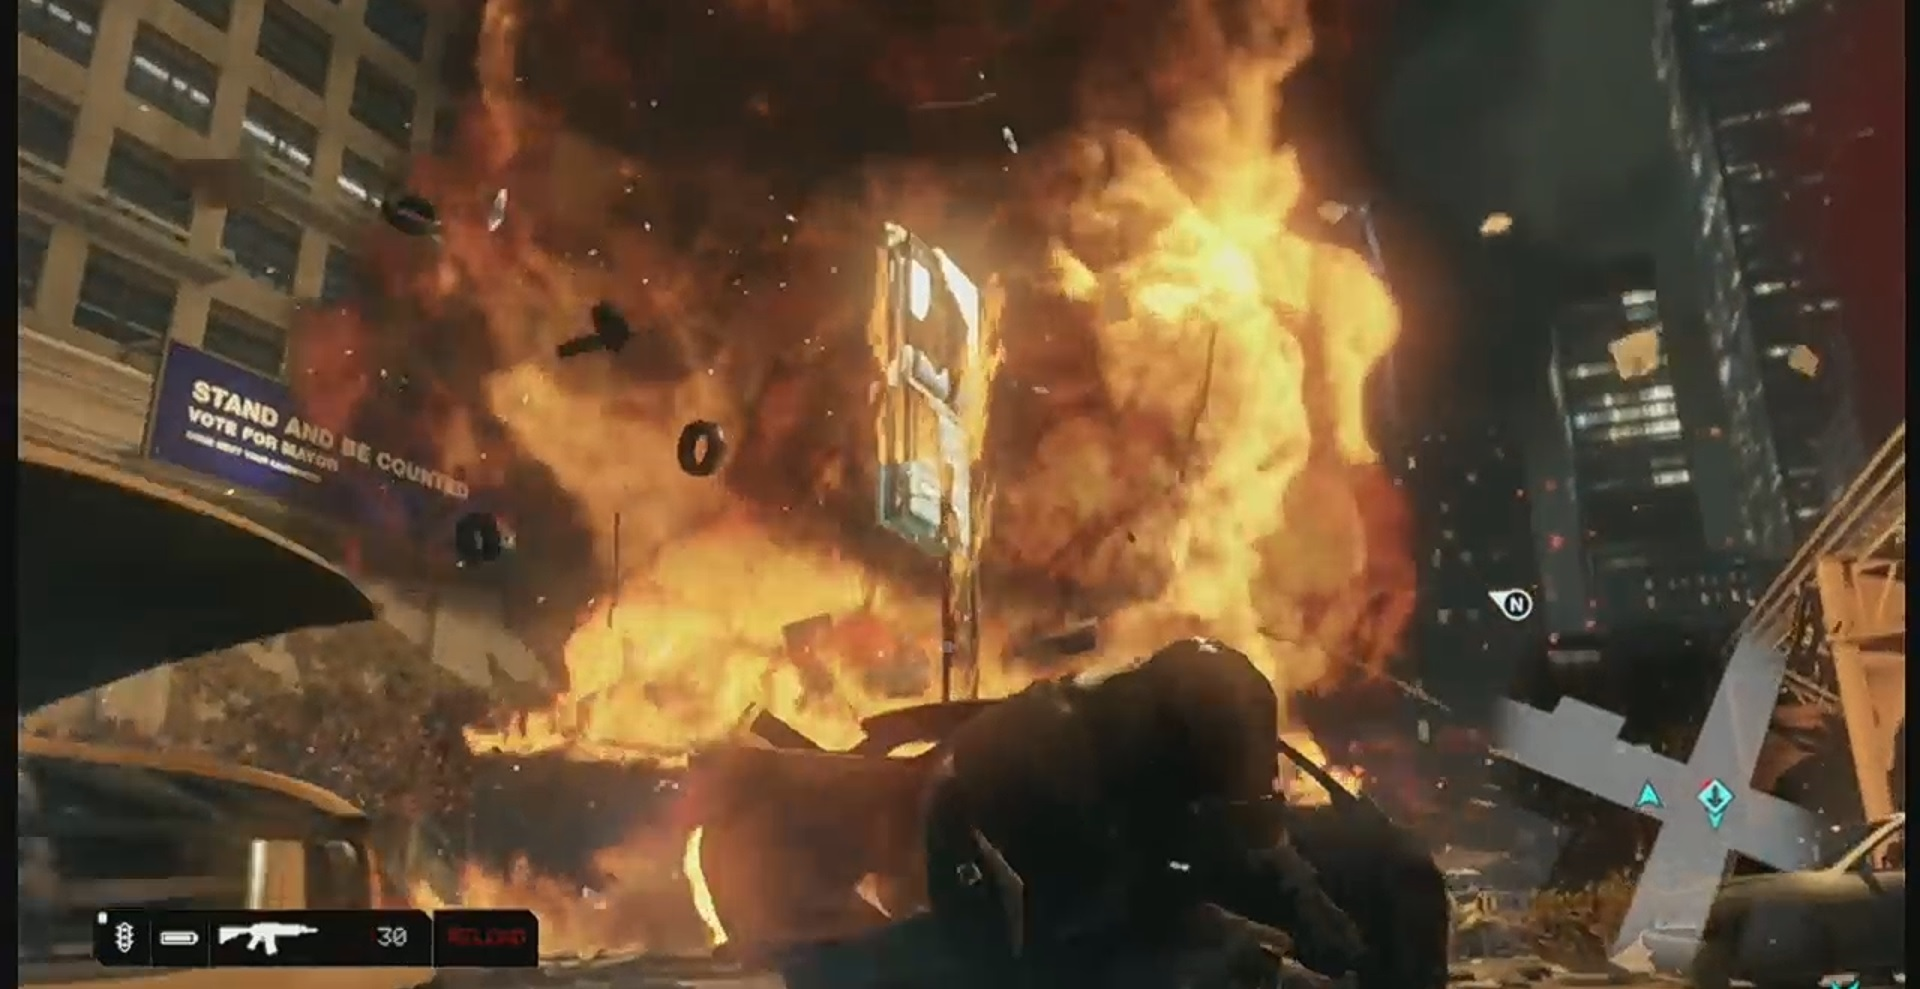 Watch-Dogs-explosions E3-2012-pcgh